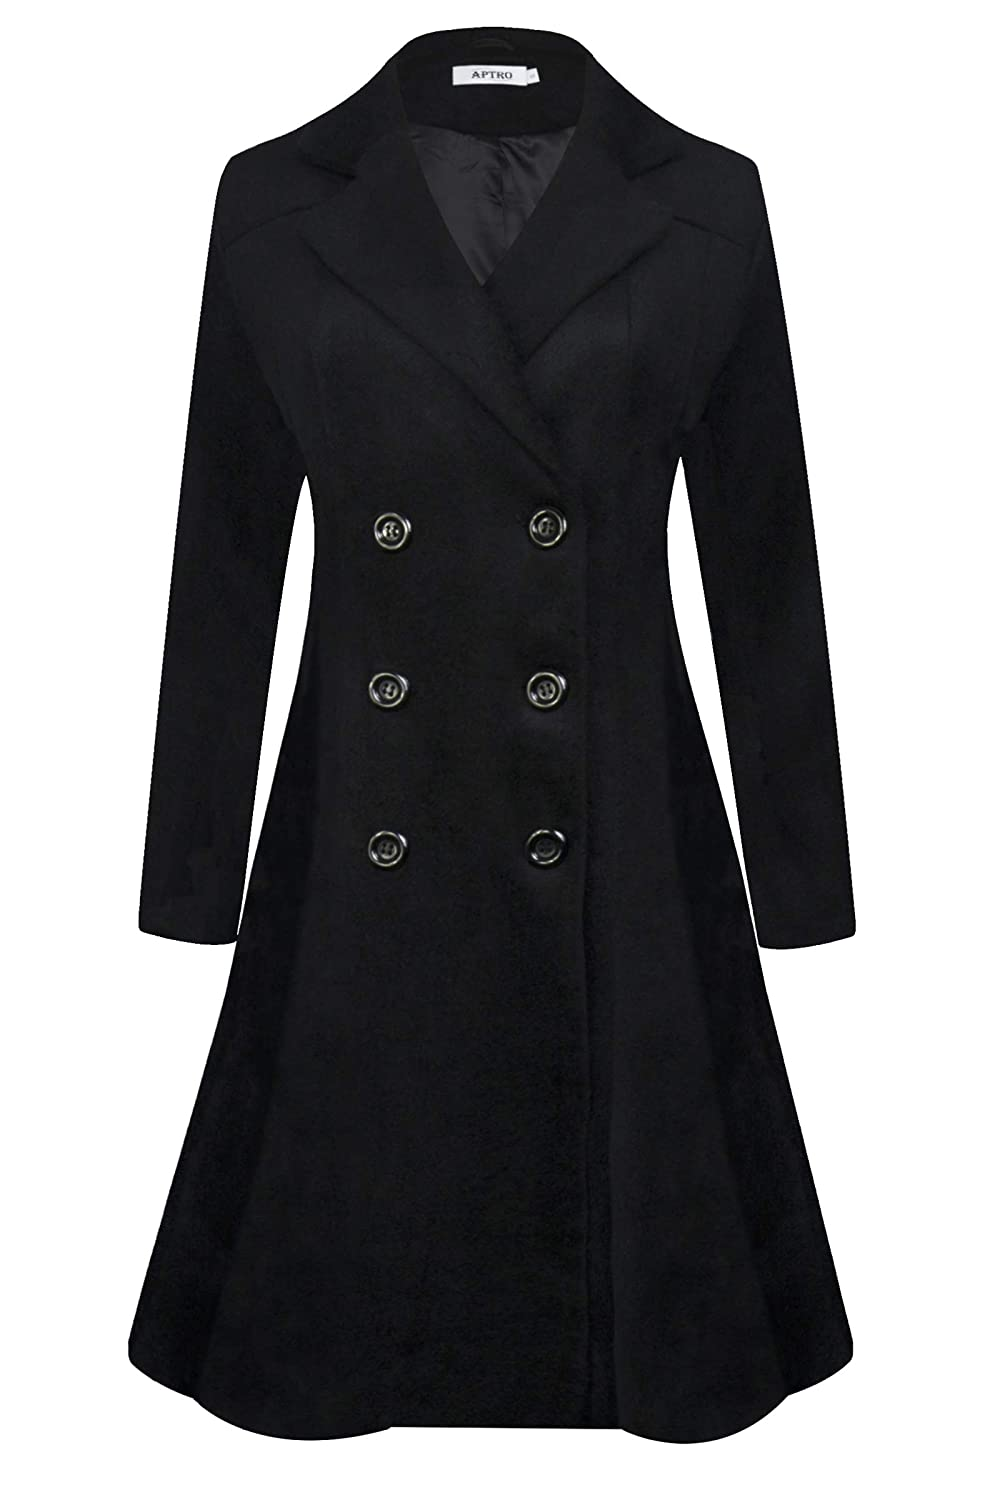 APTRO Women's Winter Wool Trench Coat Double Breasted Long Pea Coat